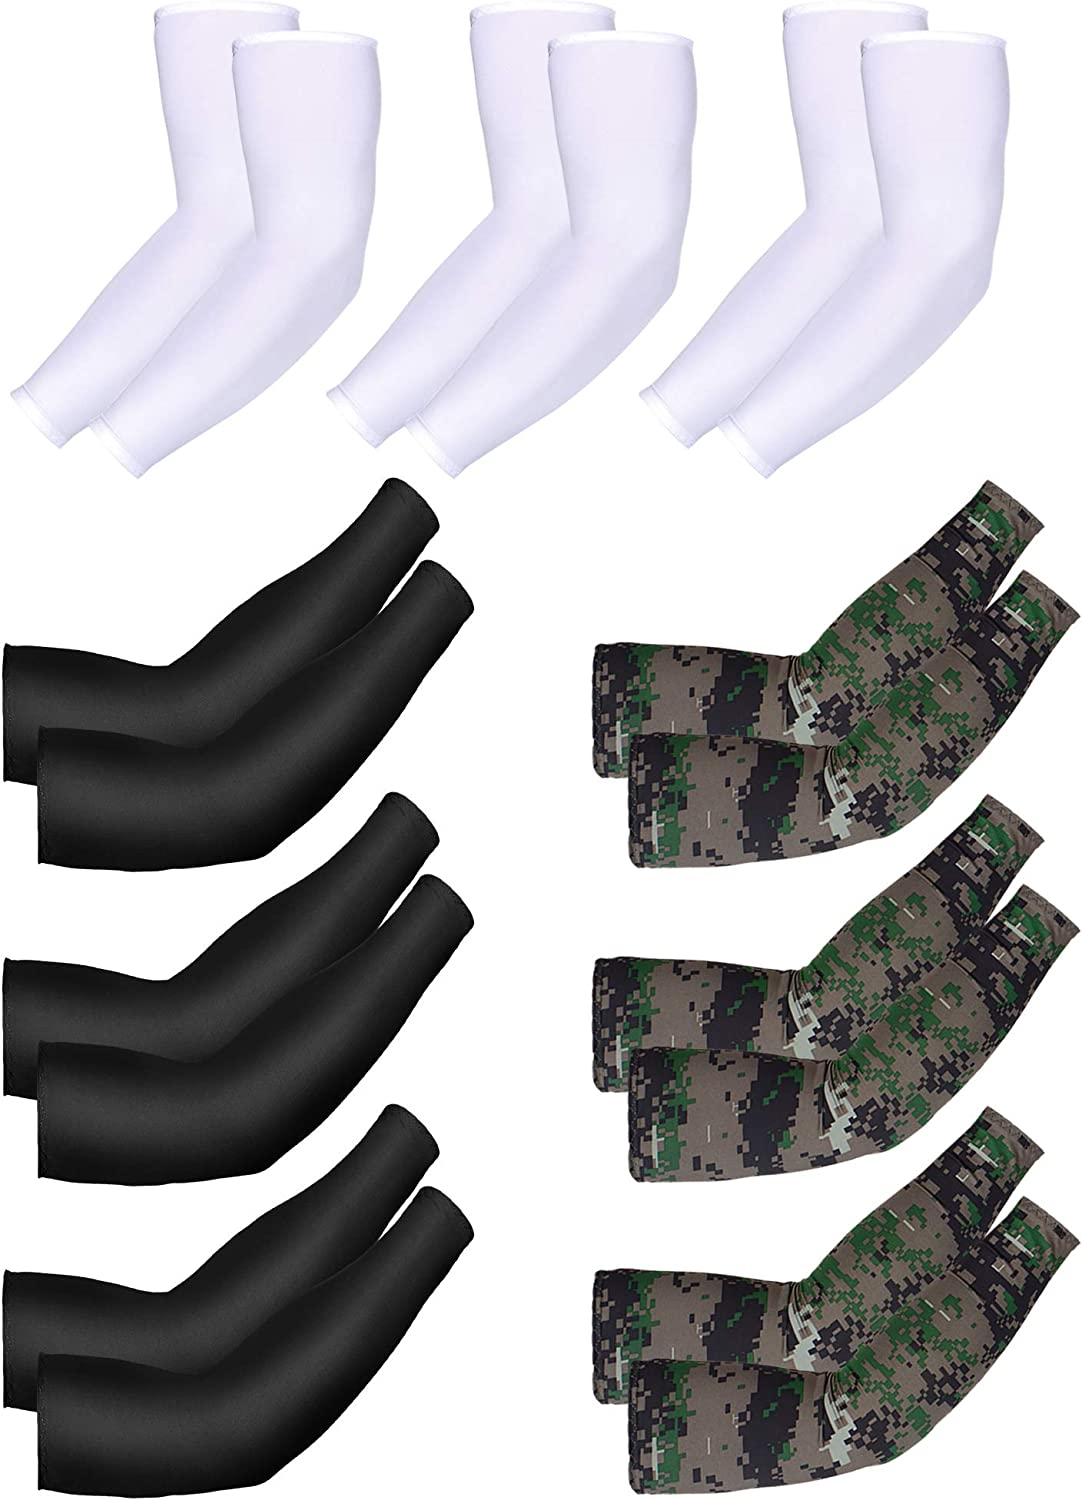 Mudder 9 Pairs Unisex UV Protection Sleeves Arm Cooling Sleeves Ice Silk Arm Sleeves Arm Cover Sleeves (Black, White, Camouflage)